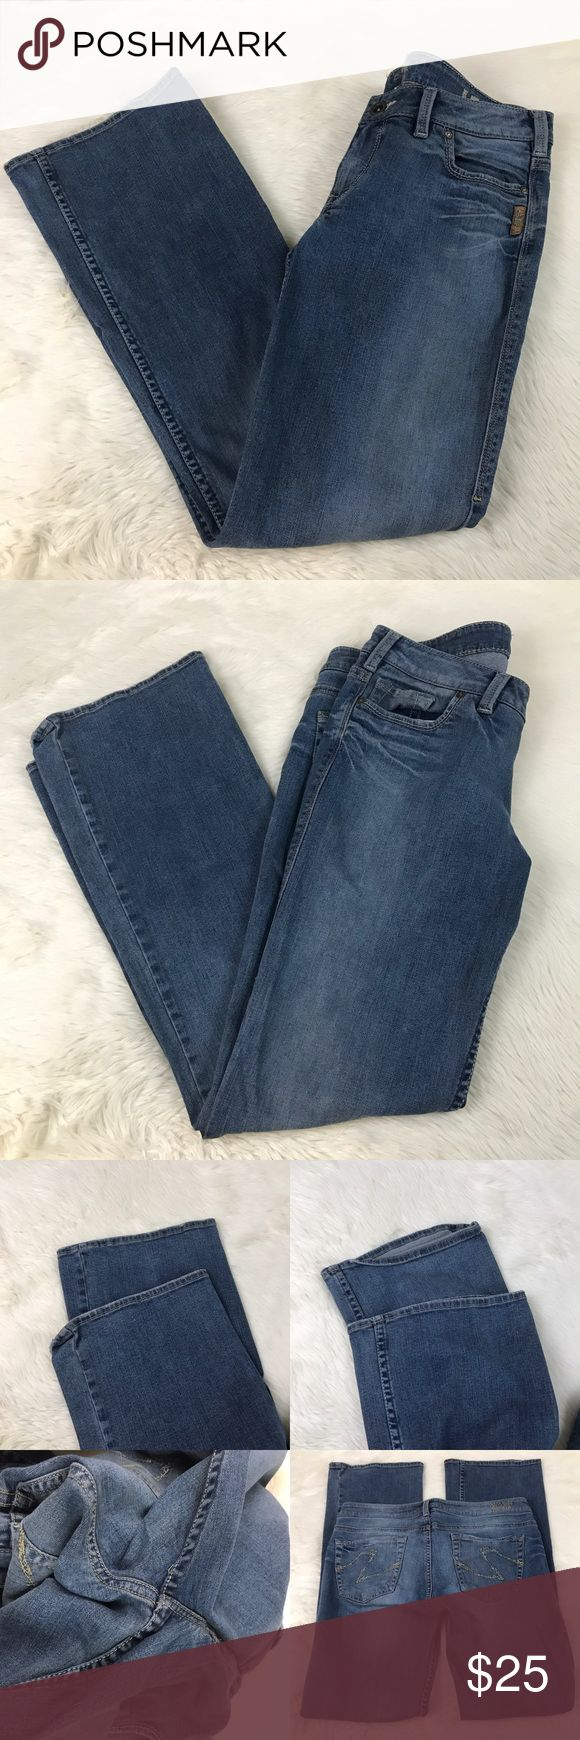 """Silver Jeans Denim Lex 31/34 Medium Wash Bootcut Women's Silver Jeans Denim Lex 31/33 Bootcut. See pics for staining/signs of wear/measurements. A little lighter blue than pics perceive. Total length 40"""". Inseam 32"""". Still lots of wear left in these jeans. Silver Jeans Jeans Boot Cut"""